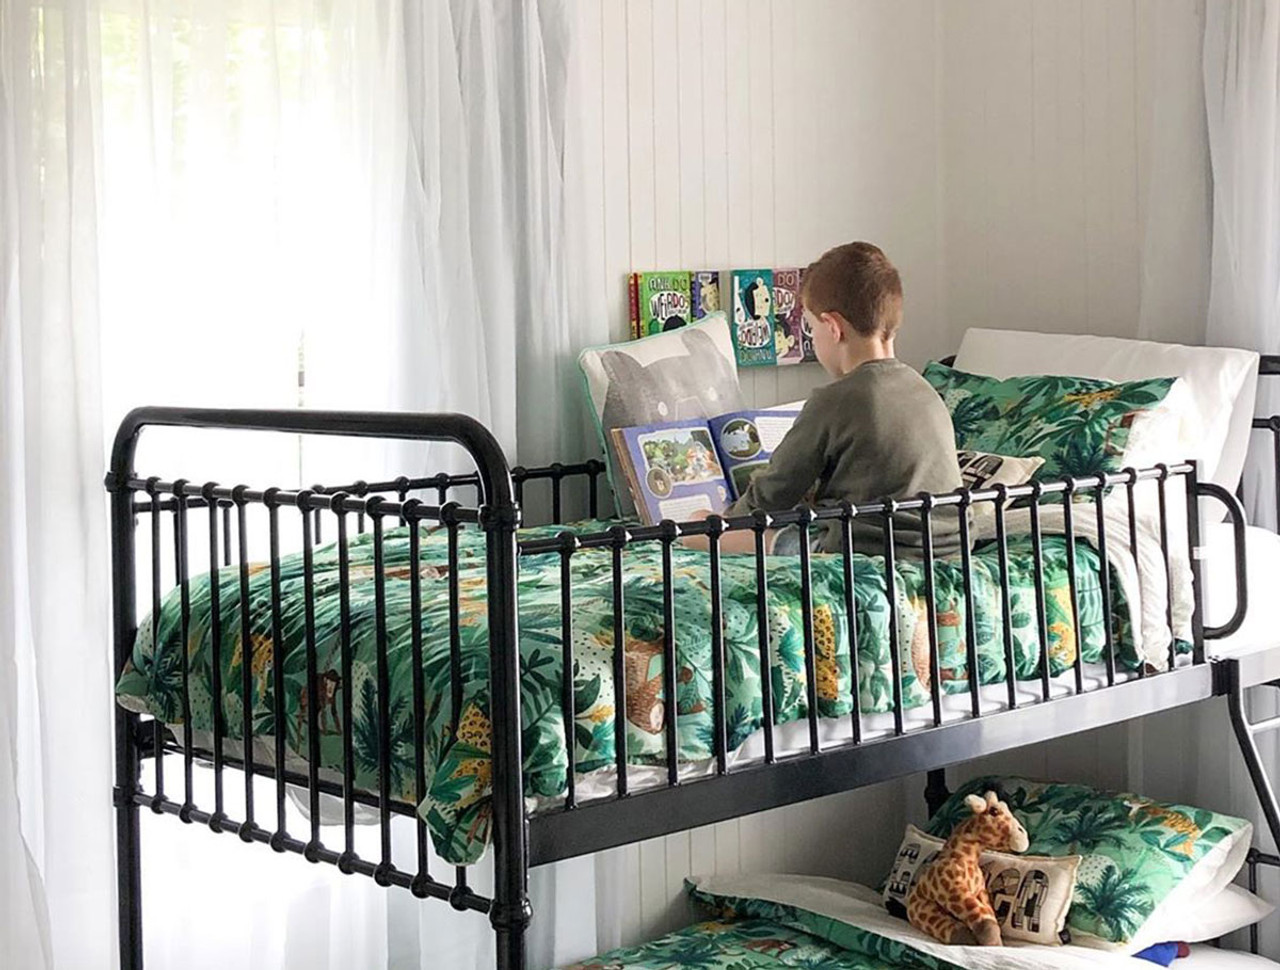 8 Reasons Your Kids Should Sleep in Bunk Beds